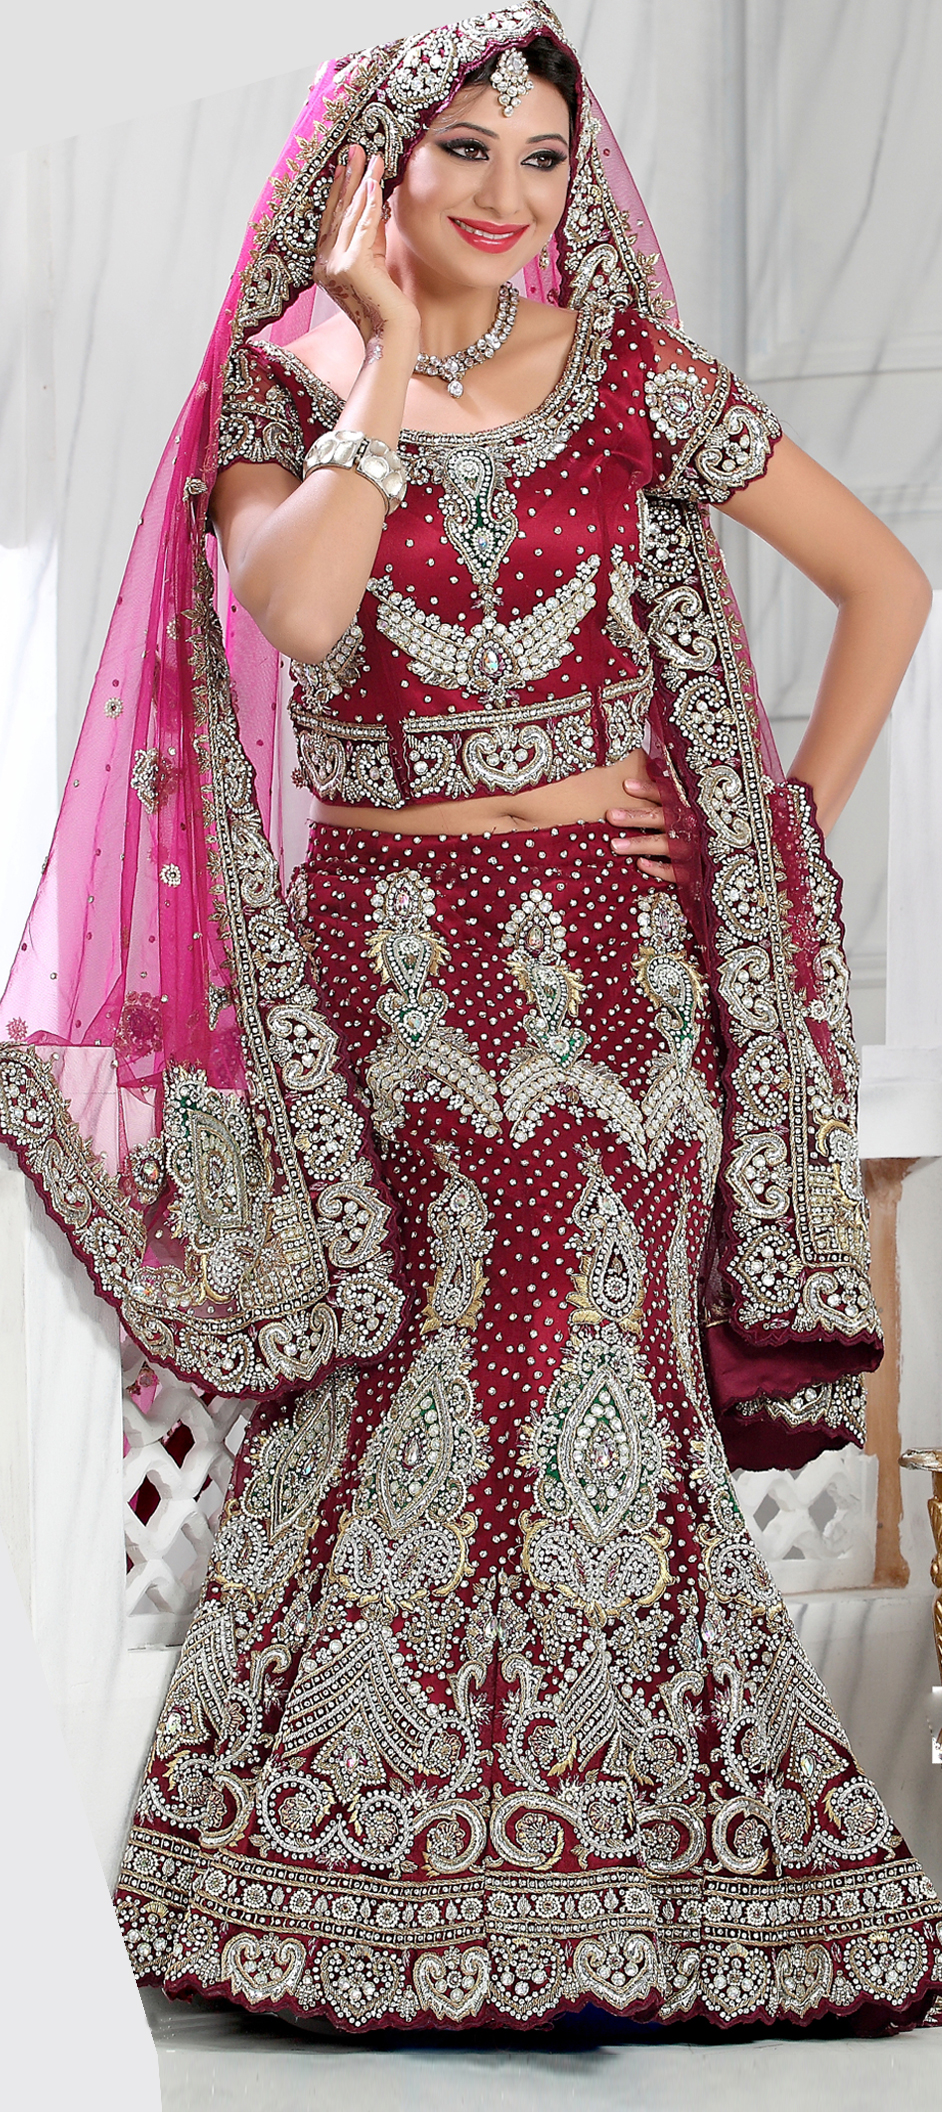 83348: Red and Maroon color family Bridal Lehenga,Wedding Lehnga .